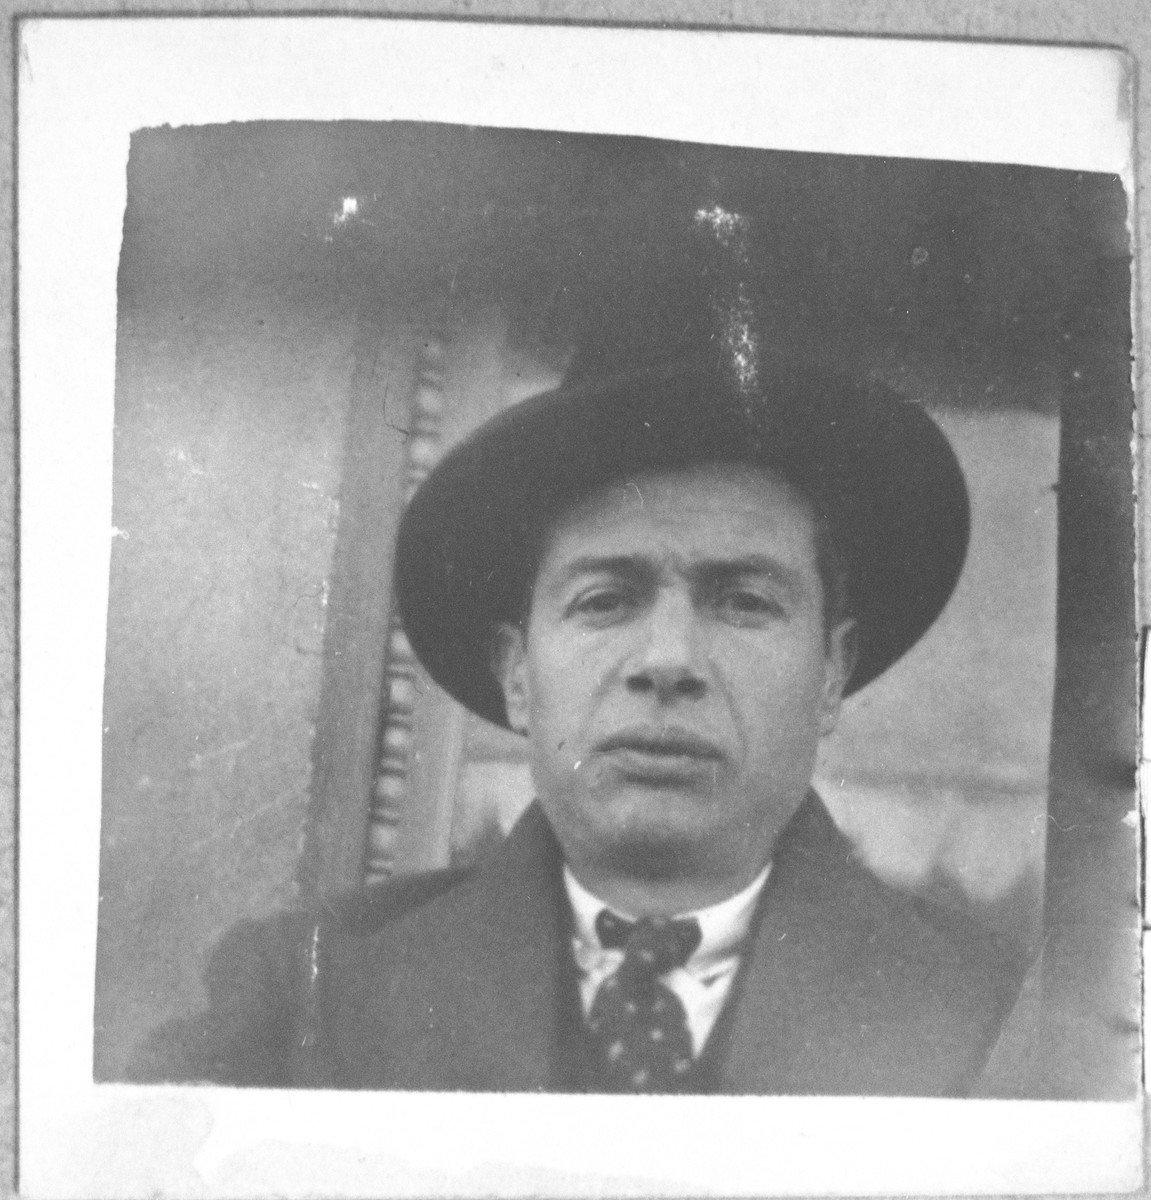 Portrait of unidentified man.